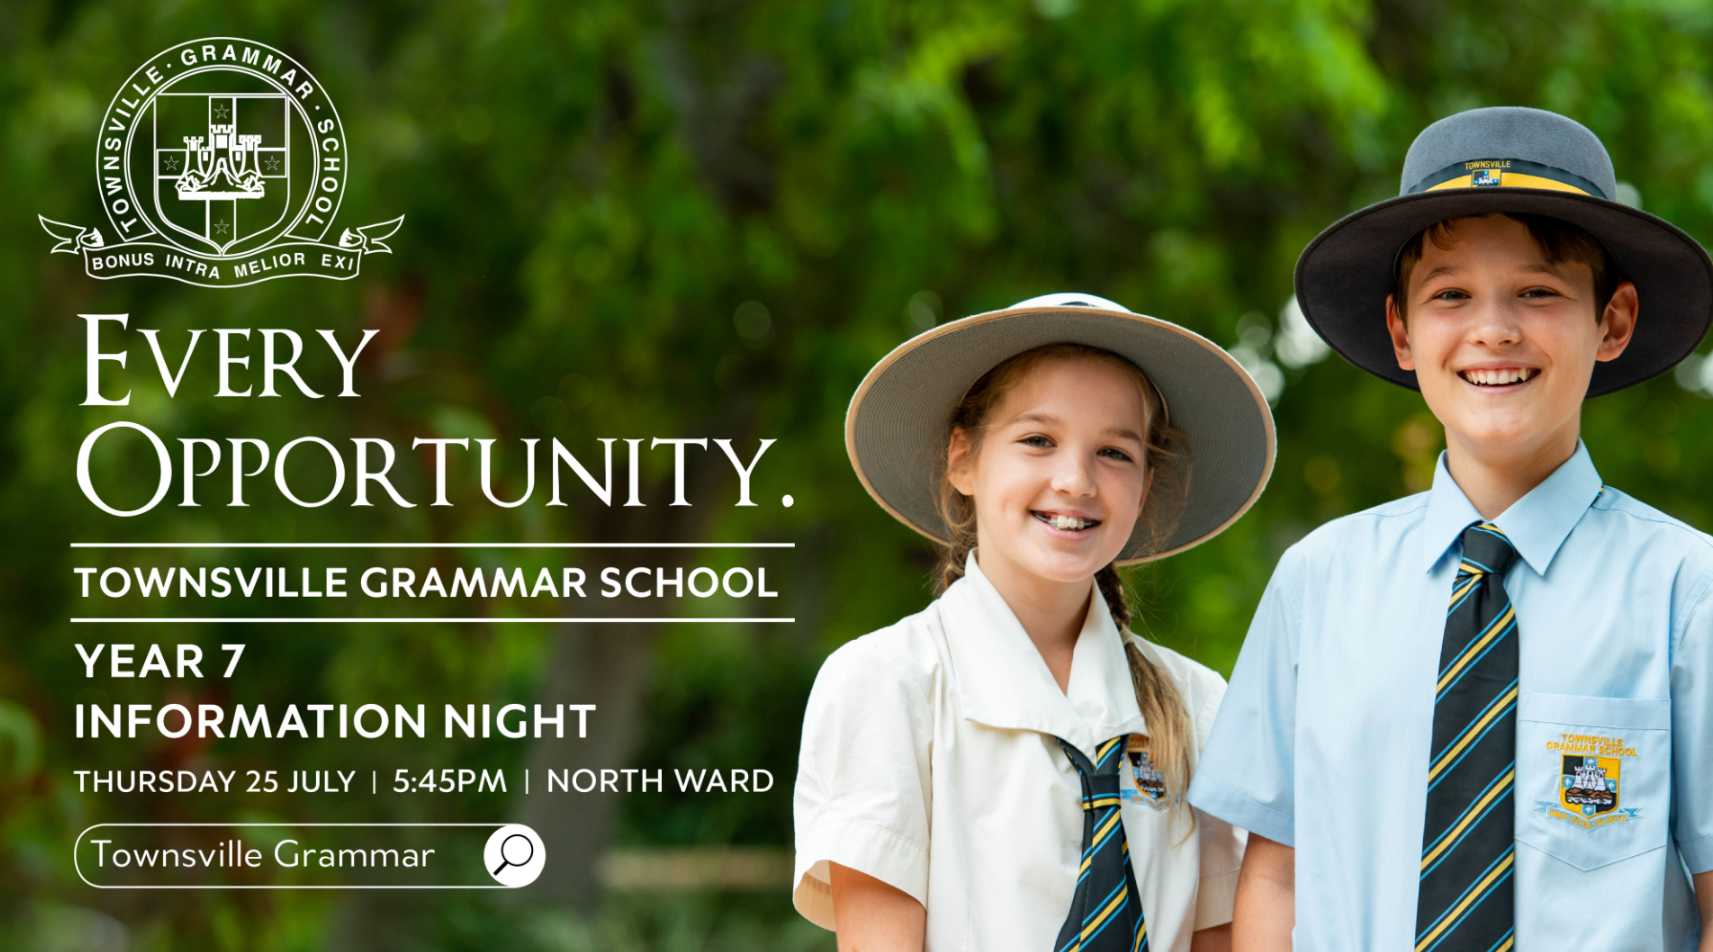 Year 7 Information Night